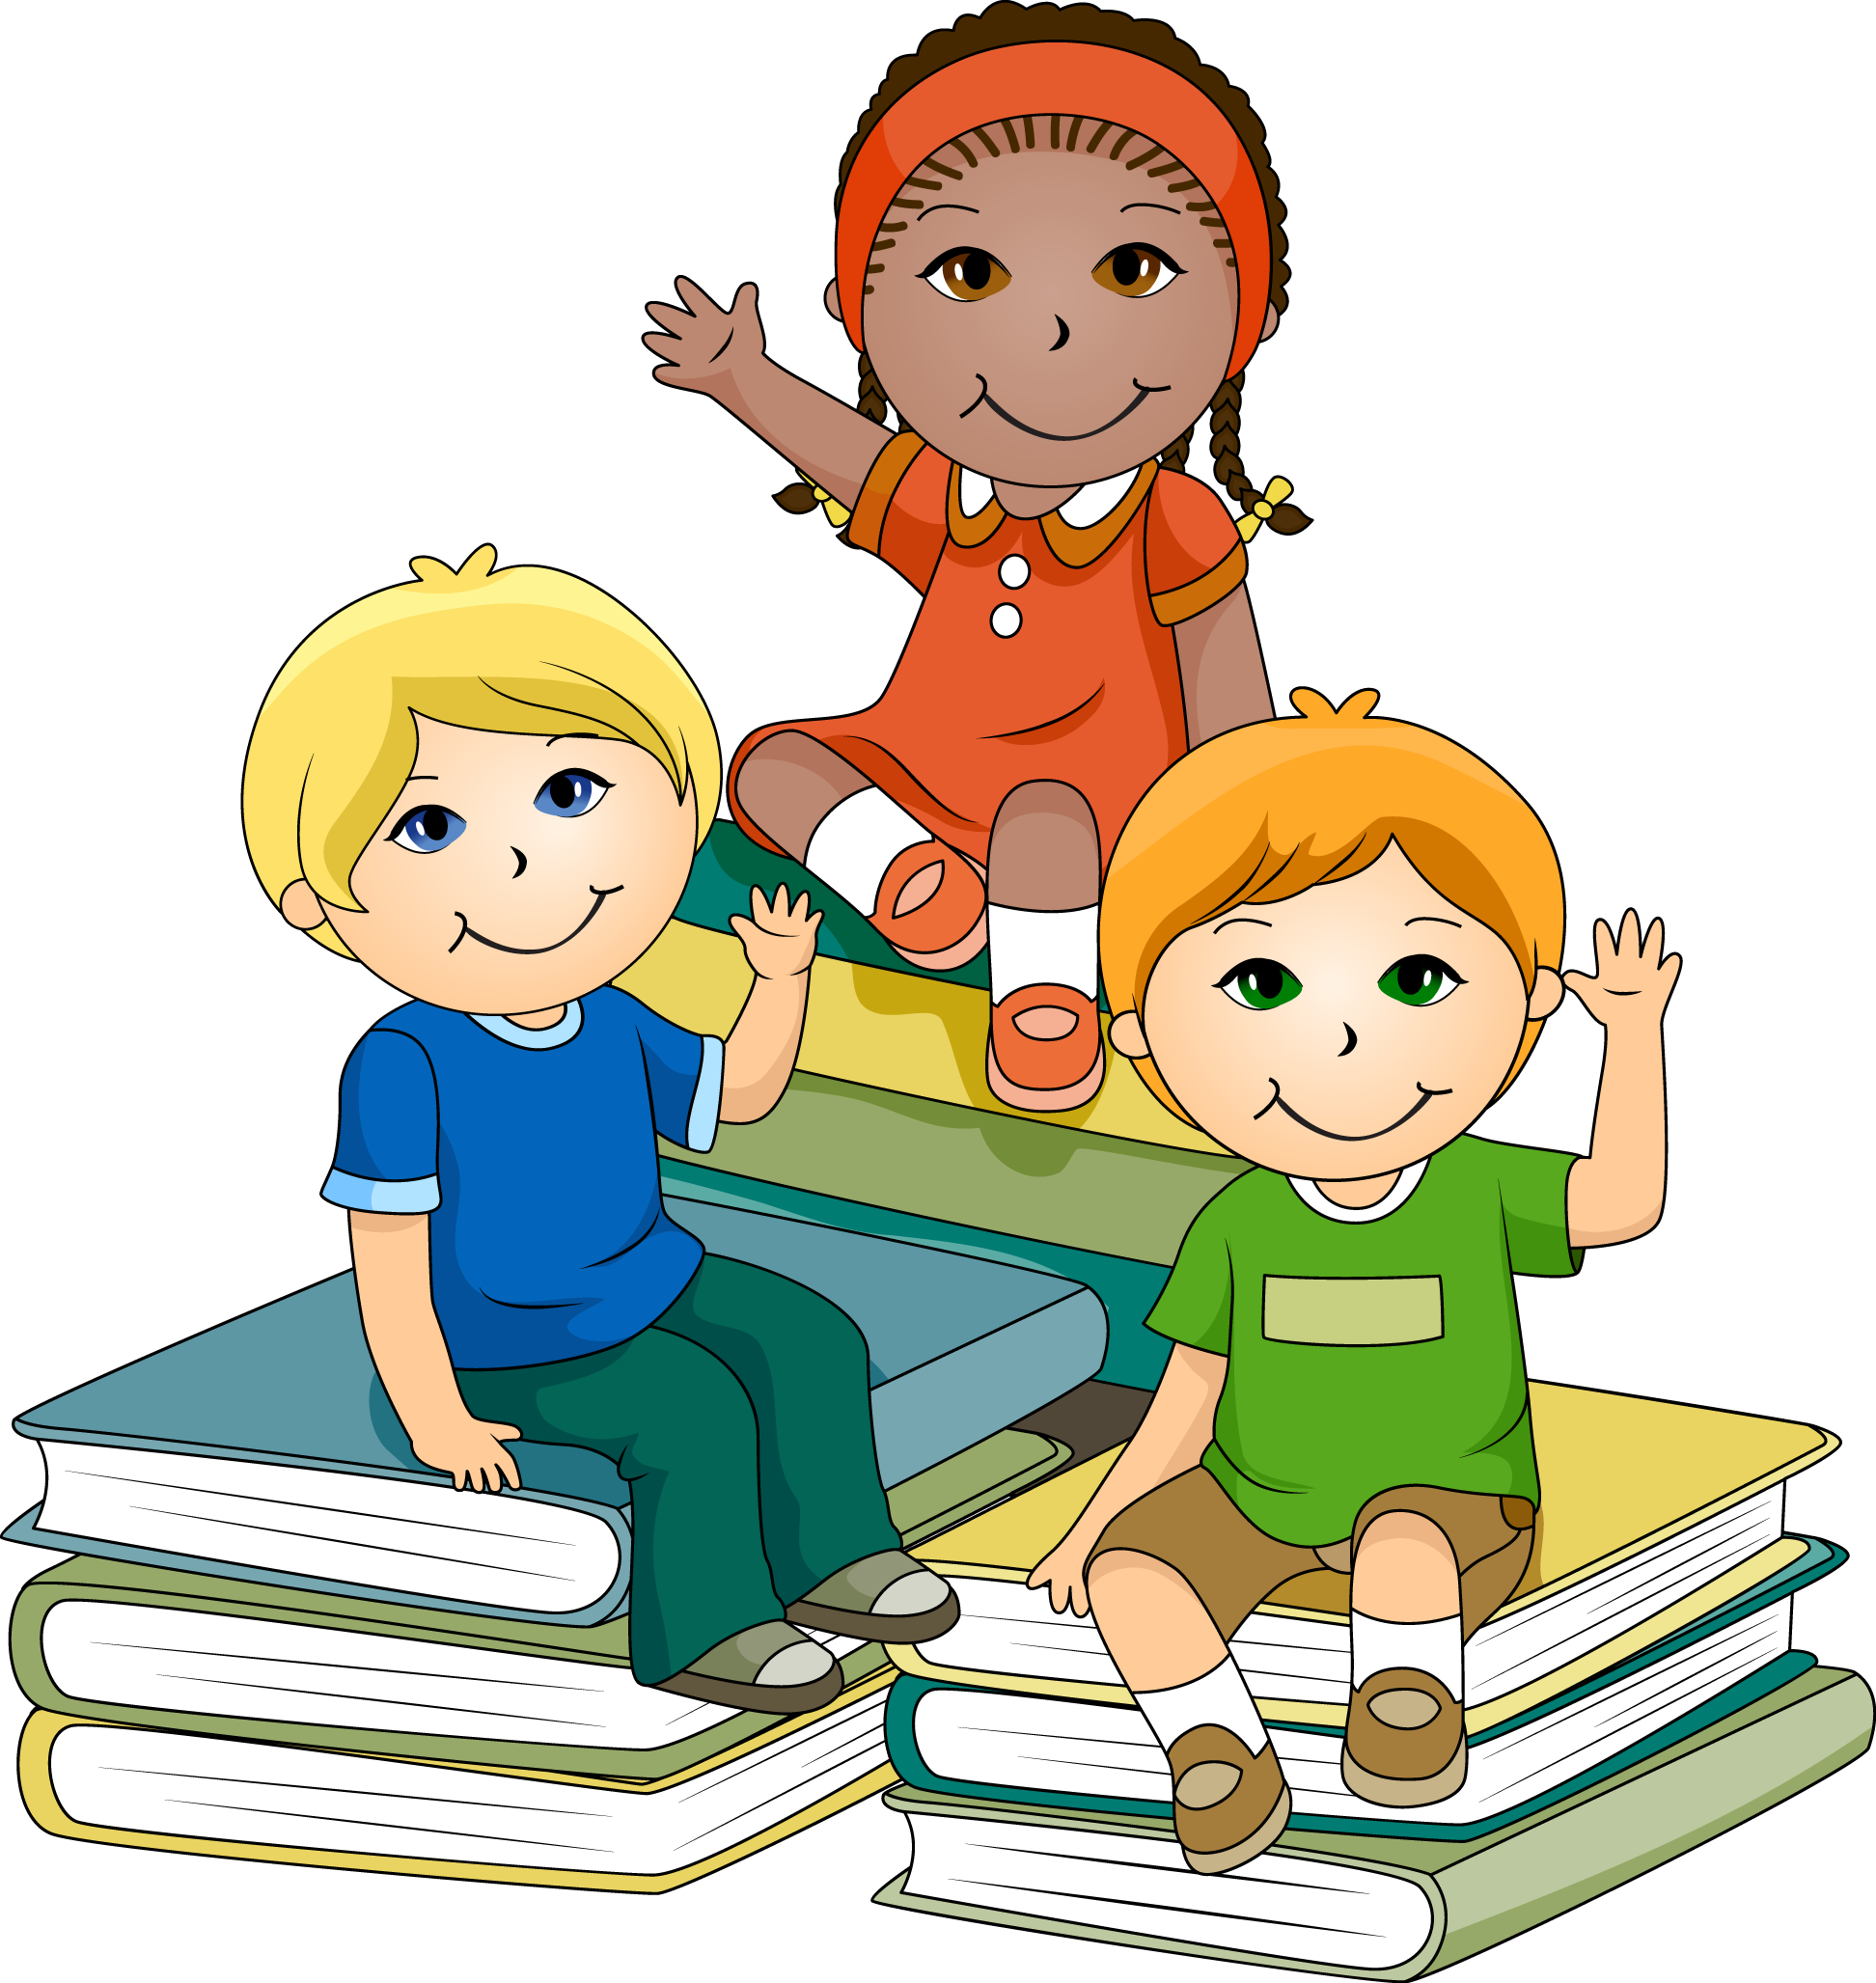 Book read clipart clip art stock Get Creative with This Free Kids Clip Art! | Pinterest | Audio books ... clip art stock